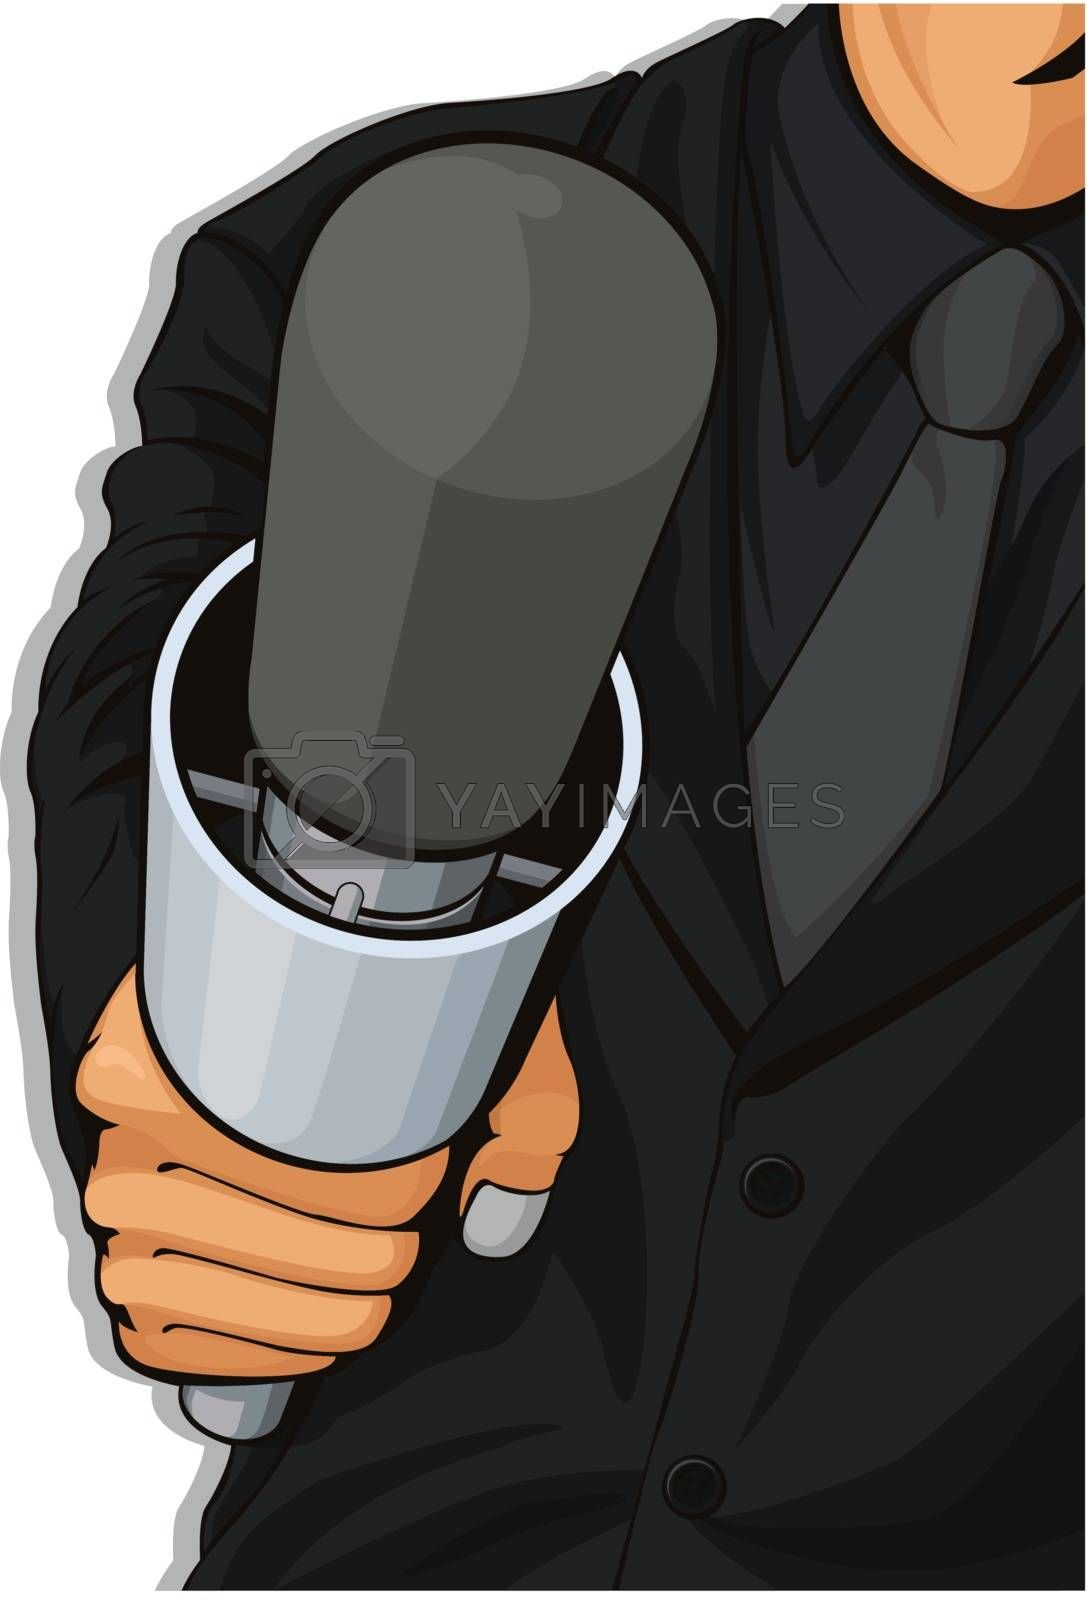 A vector image of a host holding a microphone. Available as a Vector in EPS8 format that can be scaled to any size without loss of quality. The graphics elements are all can be moved or edited individually.